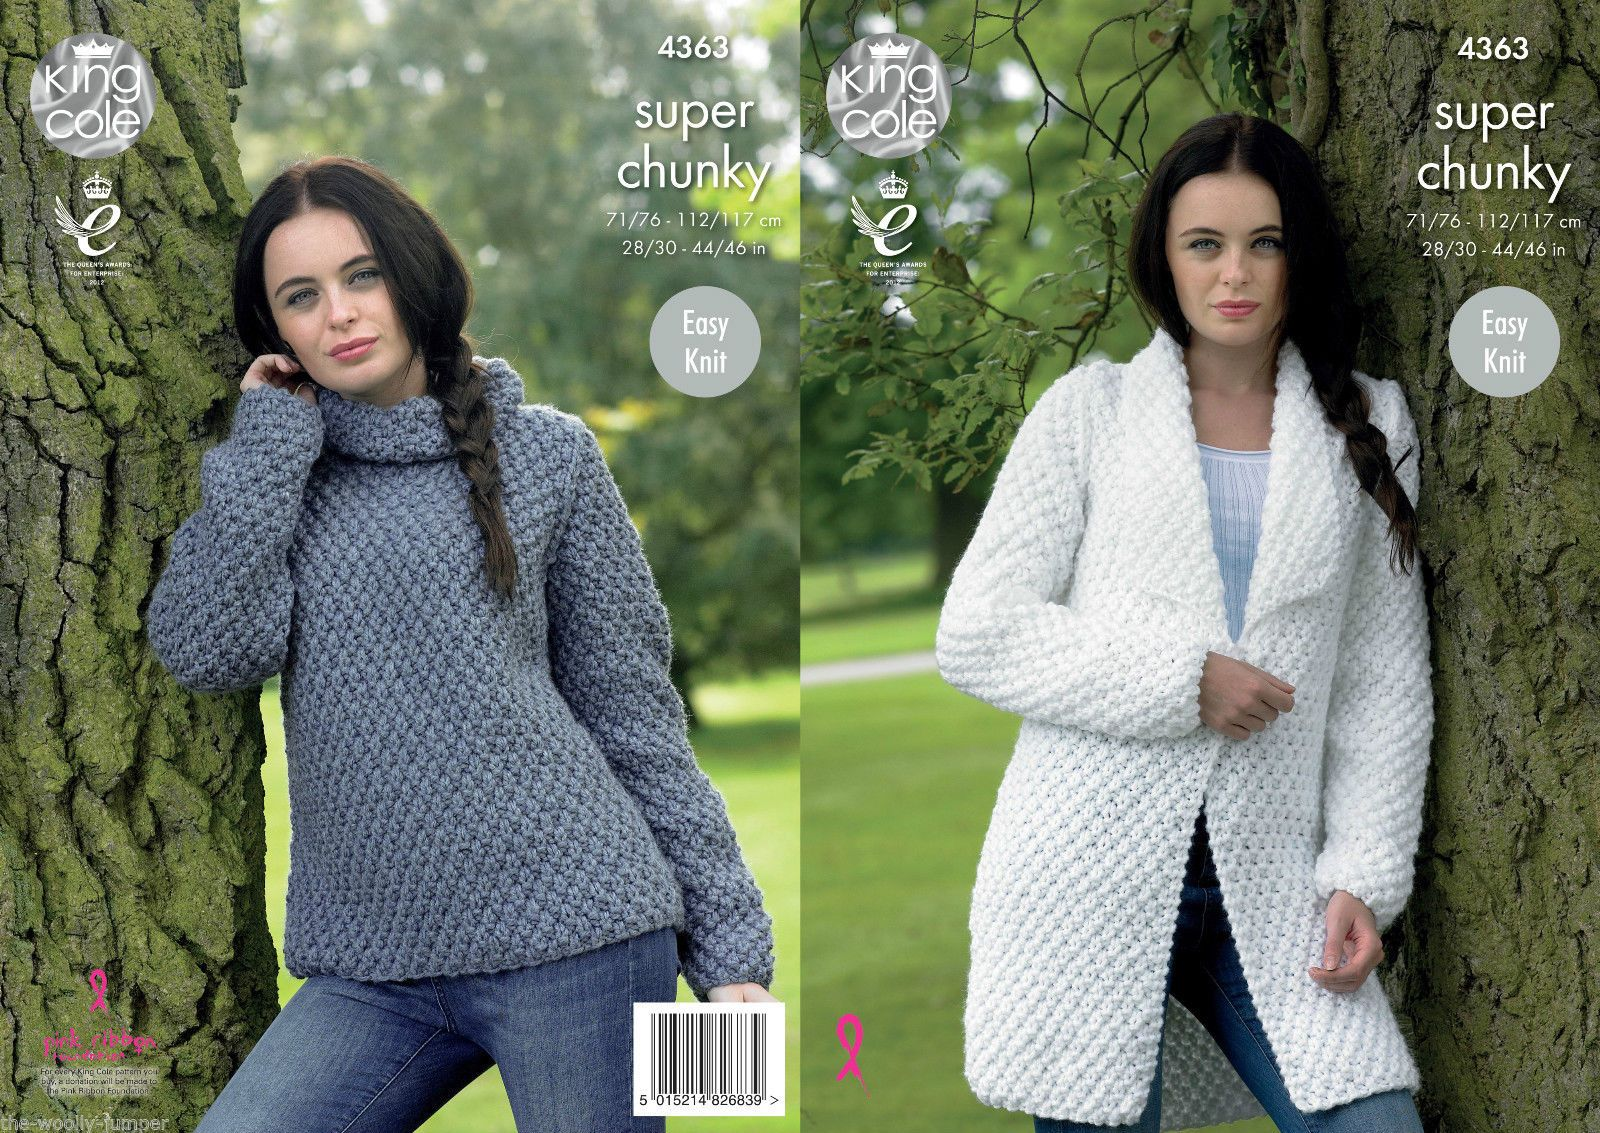 8020ca743 4363 - KING COLE BIG VALUE SUPER CHUNKY SWEATER CARDIGAN JACKET KNITTING  PATTERN - TO FIT CHEST 28 TO 46